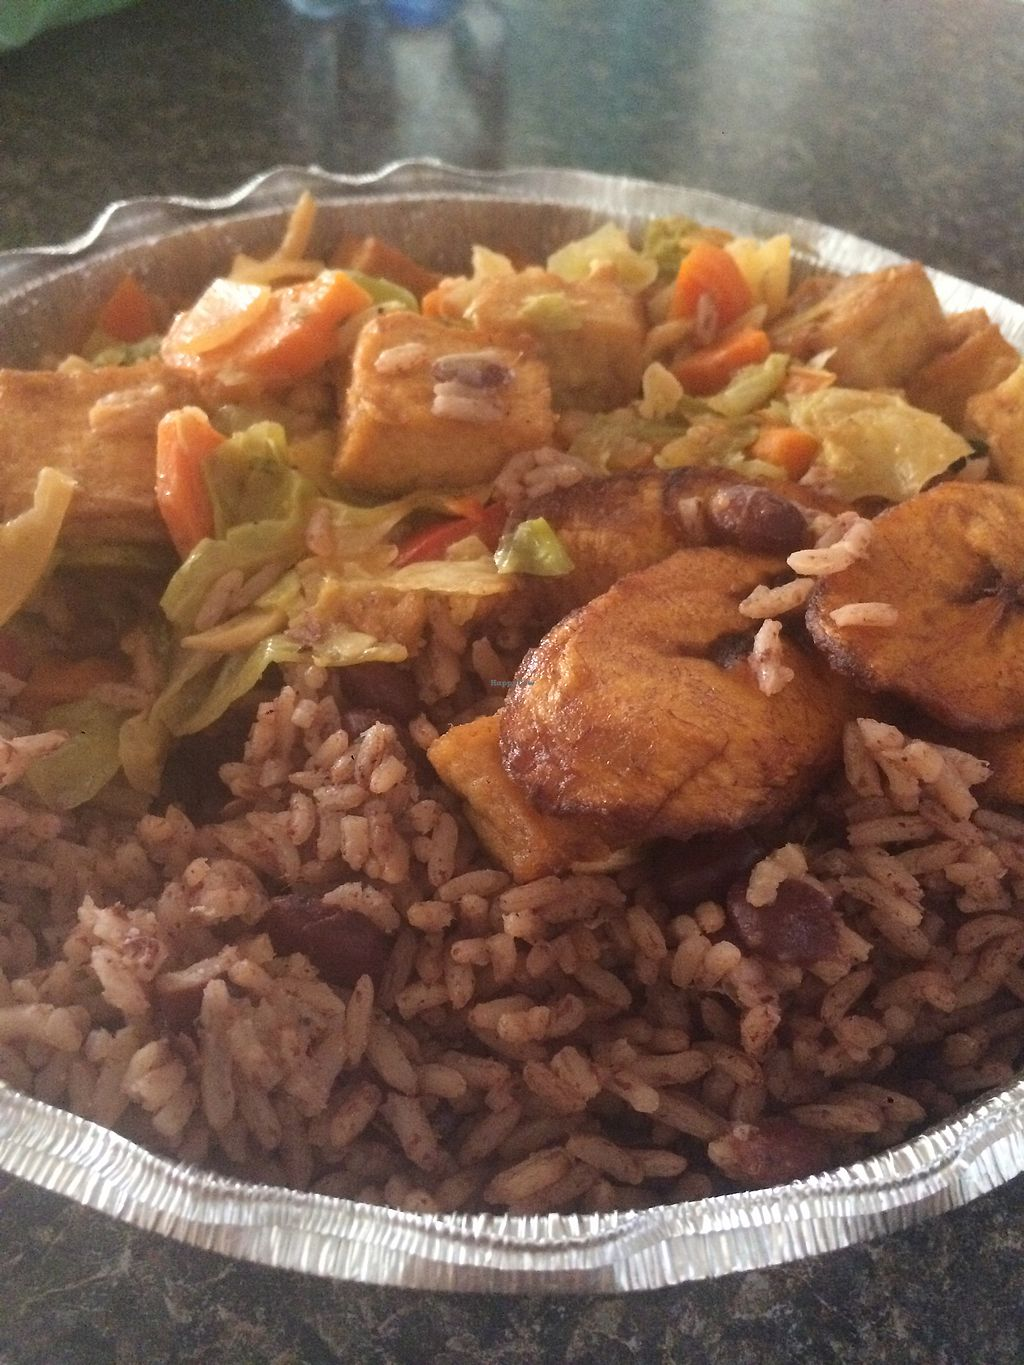 """Photo of Sweet Fingers Restaurant  by <a href=""""/members/profile/MichelleSF"""">MichelleSF</a> <br/>Tofu stew take-out. Sooooo good! <br/> September 16, 2017  - <a href='/contact/abuse/image/92381/305165'>Report</a>"""